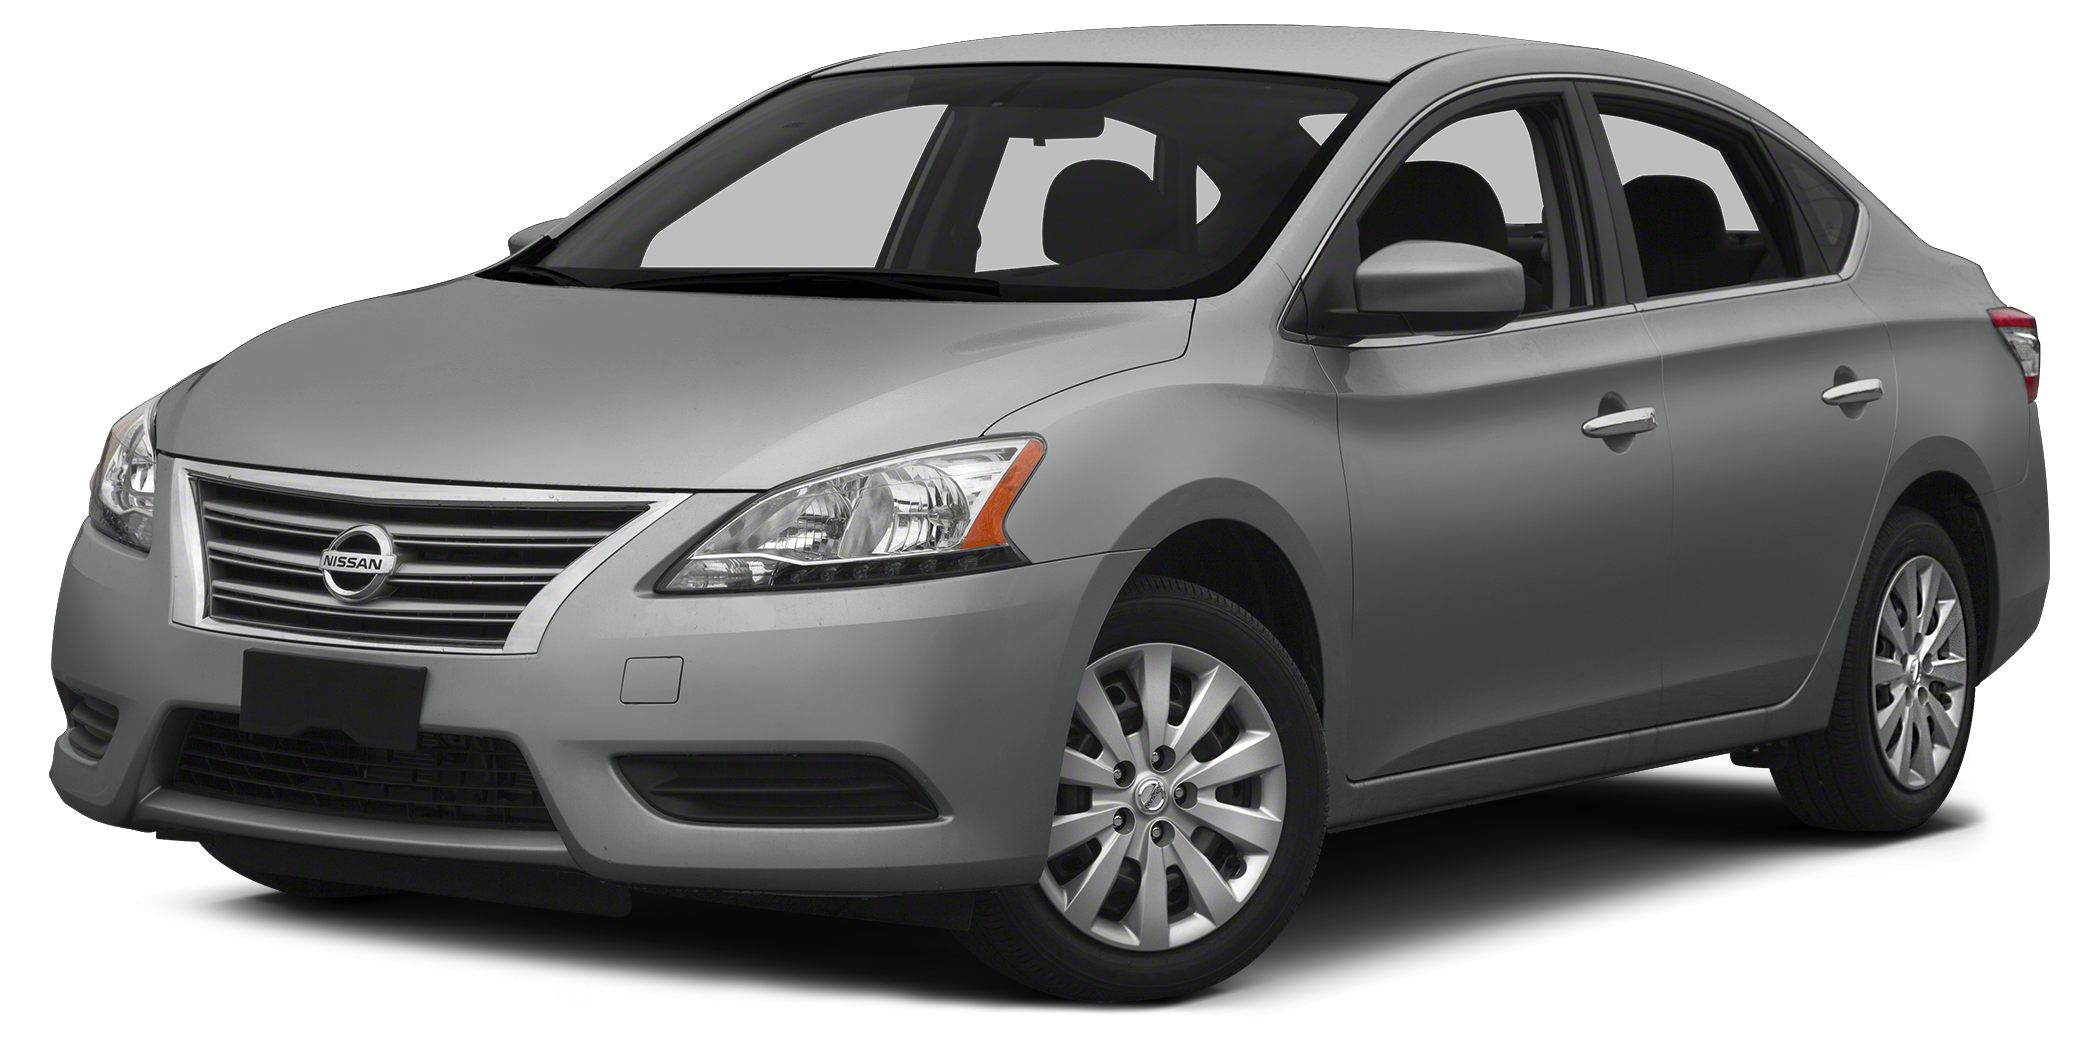 2014 Nissan Sentra S Miles 64324Color Magnetic Gray Stock SB18166A VIN 3N1AB7AP3EY276935